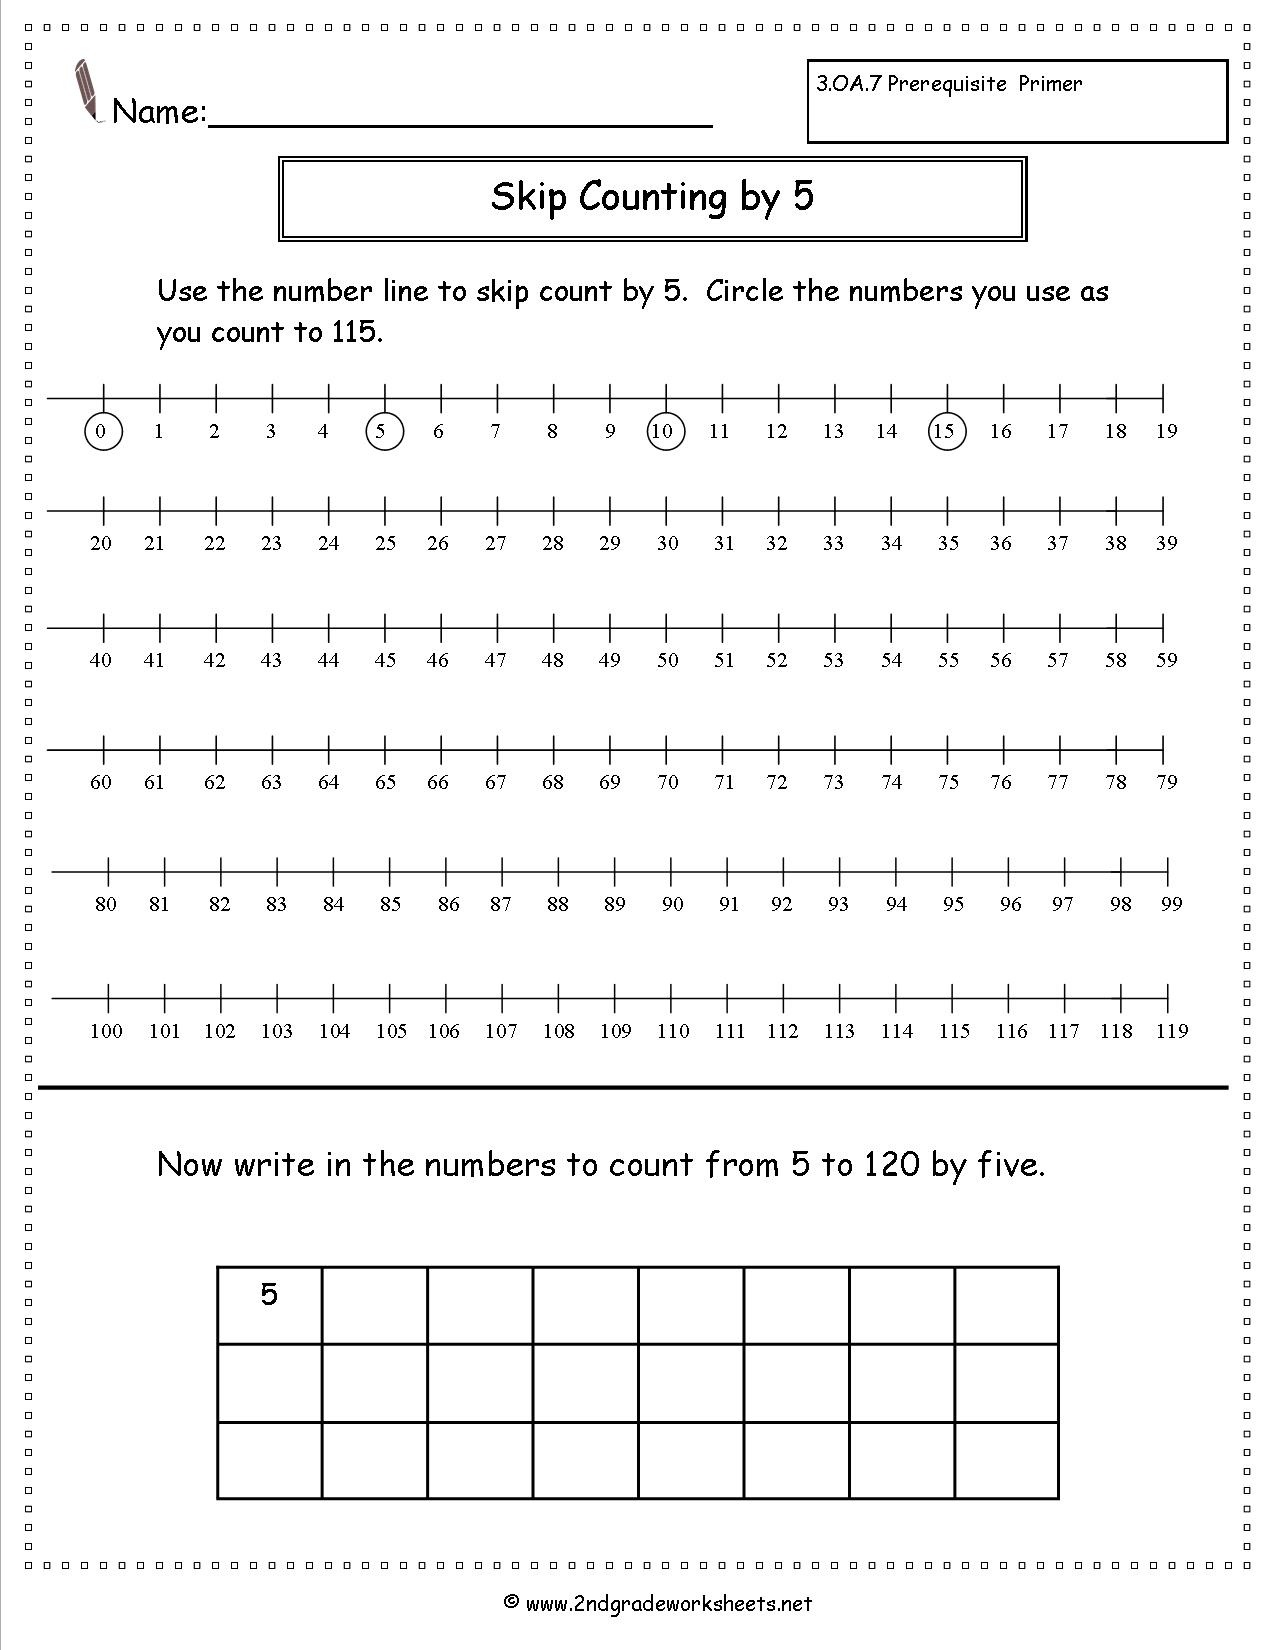 Free Skip Counting Worksheets - Free Printable Skip Counting Worksheets